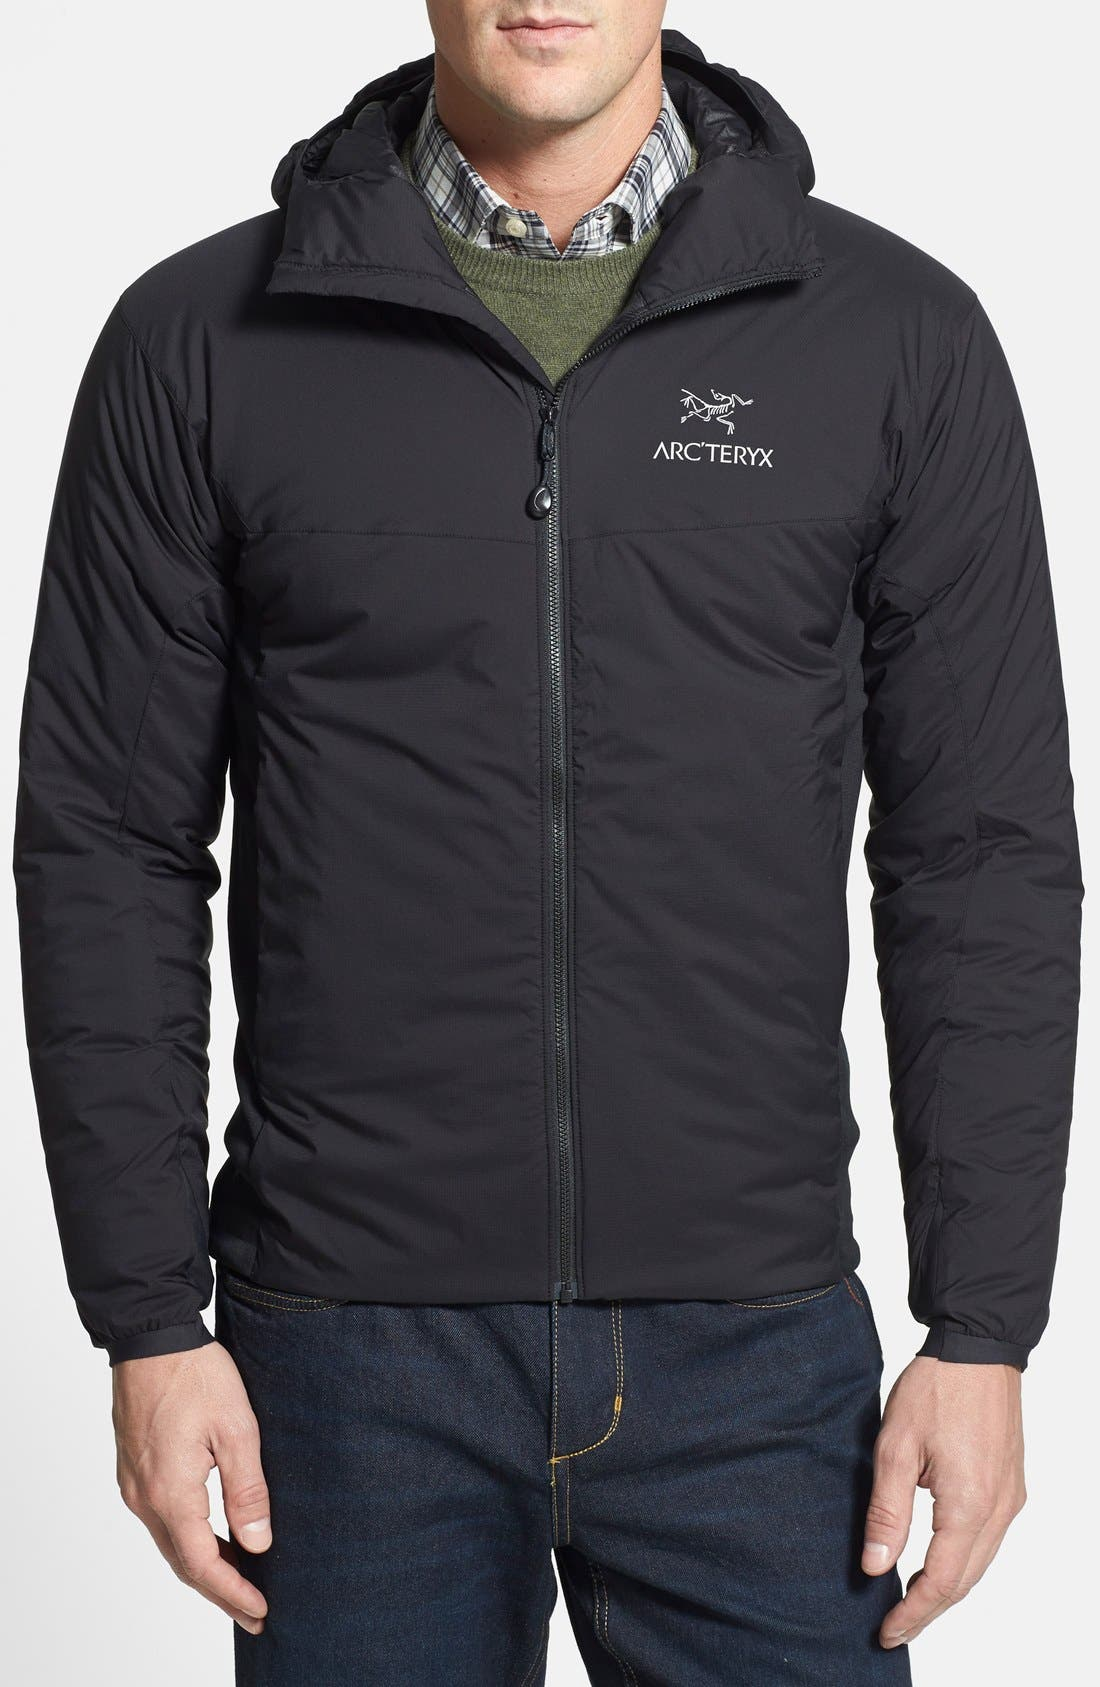 Alternate Image 1 Selected - Arc'teryx 'Atom LT' Trim Fit Wind & Water Resistant Coreloft™ Hooded Jacket